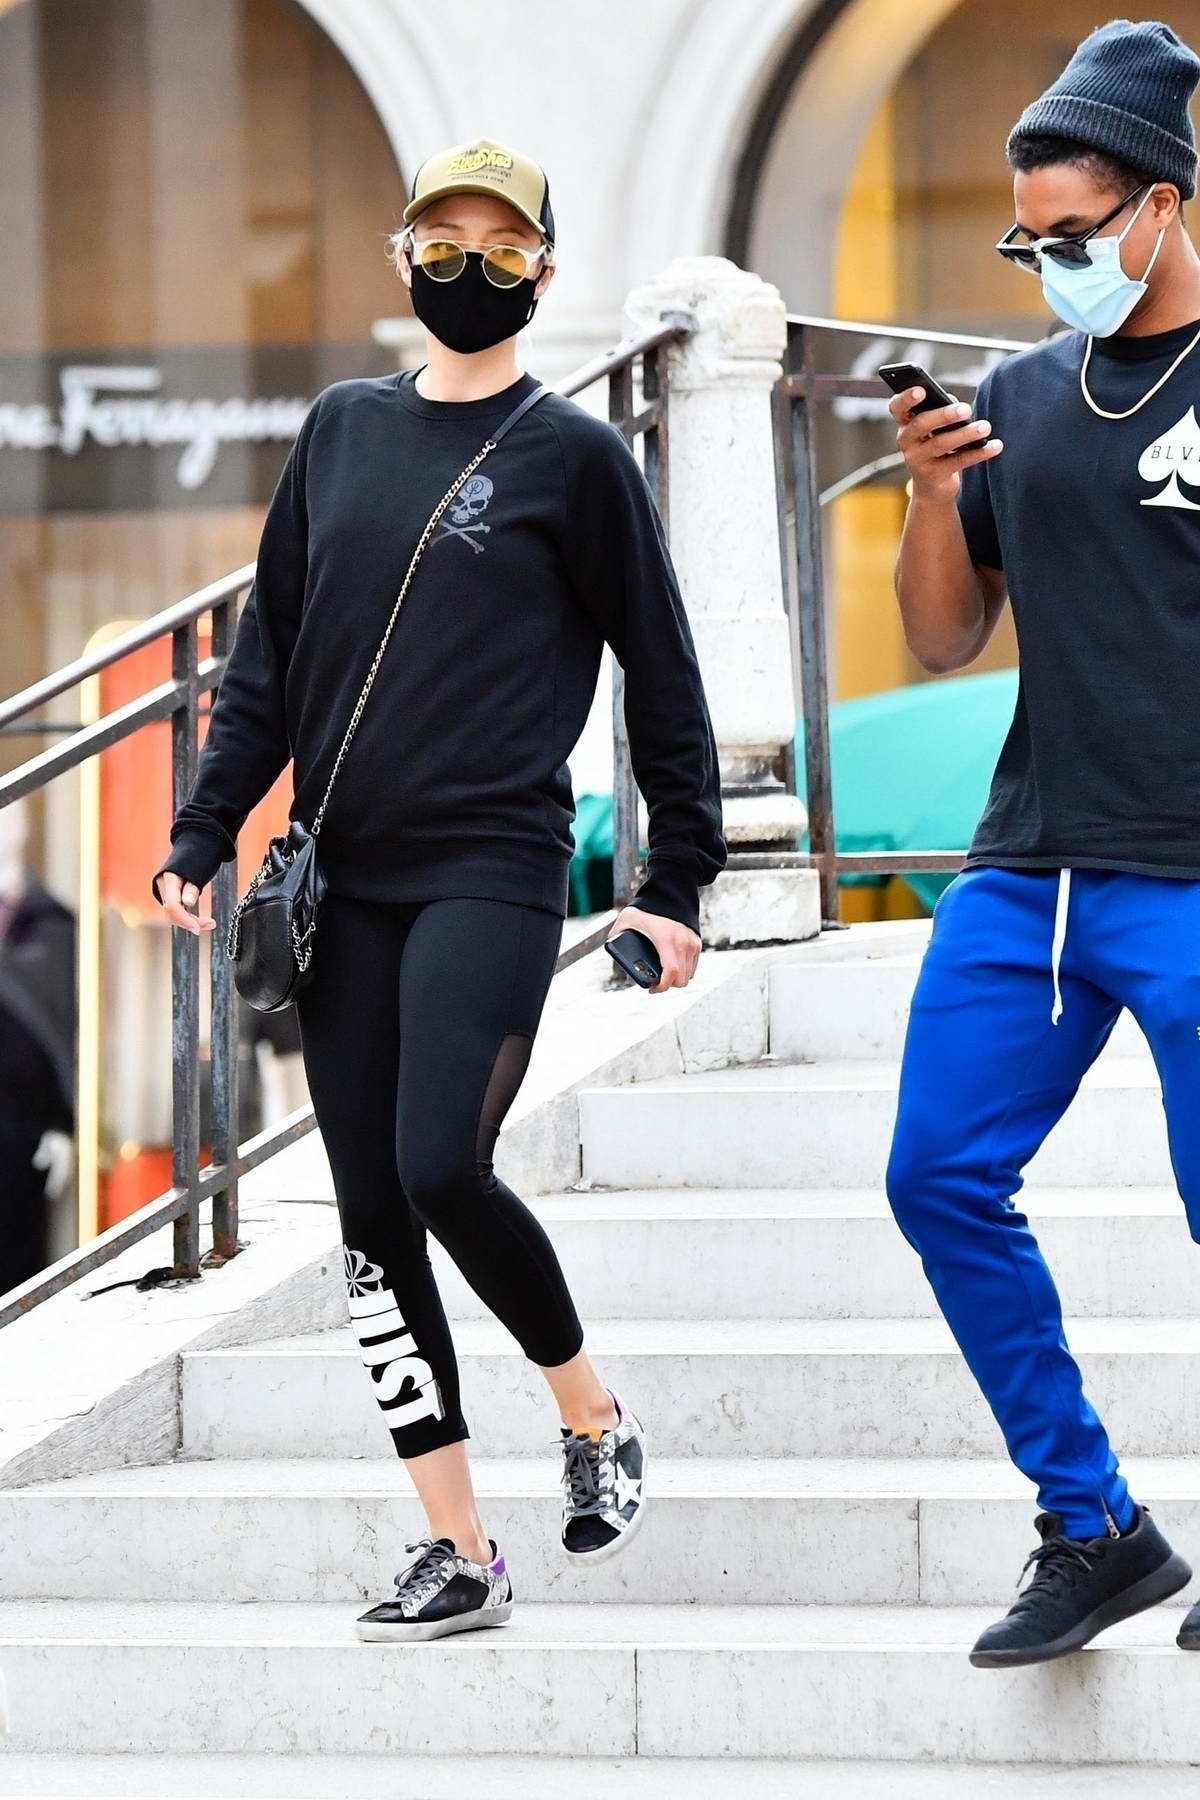 Pom Klementieff enjoys a day out sightseeing with a mystery male friend in Venice, Italy